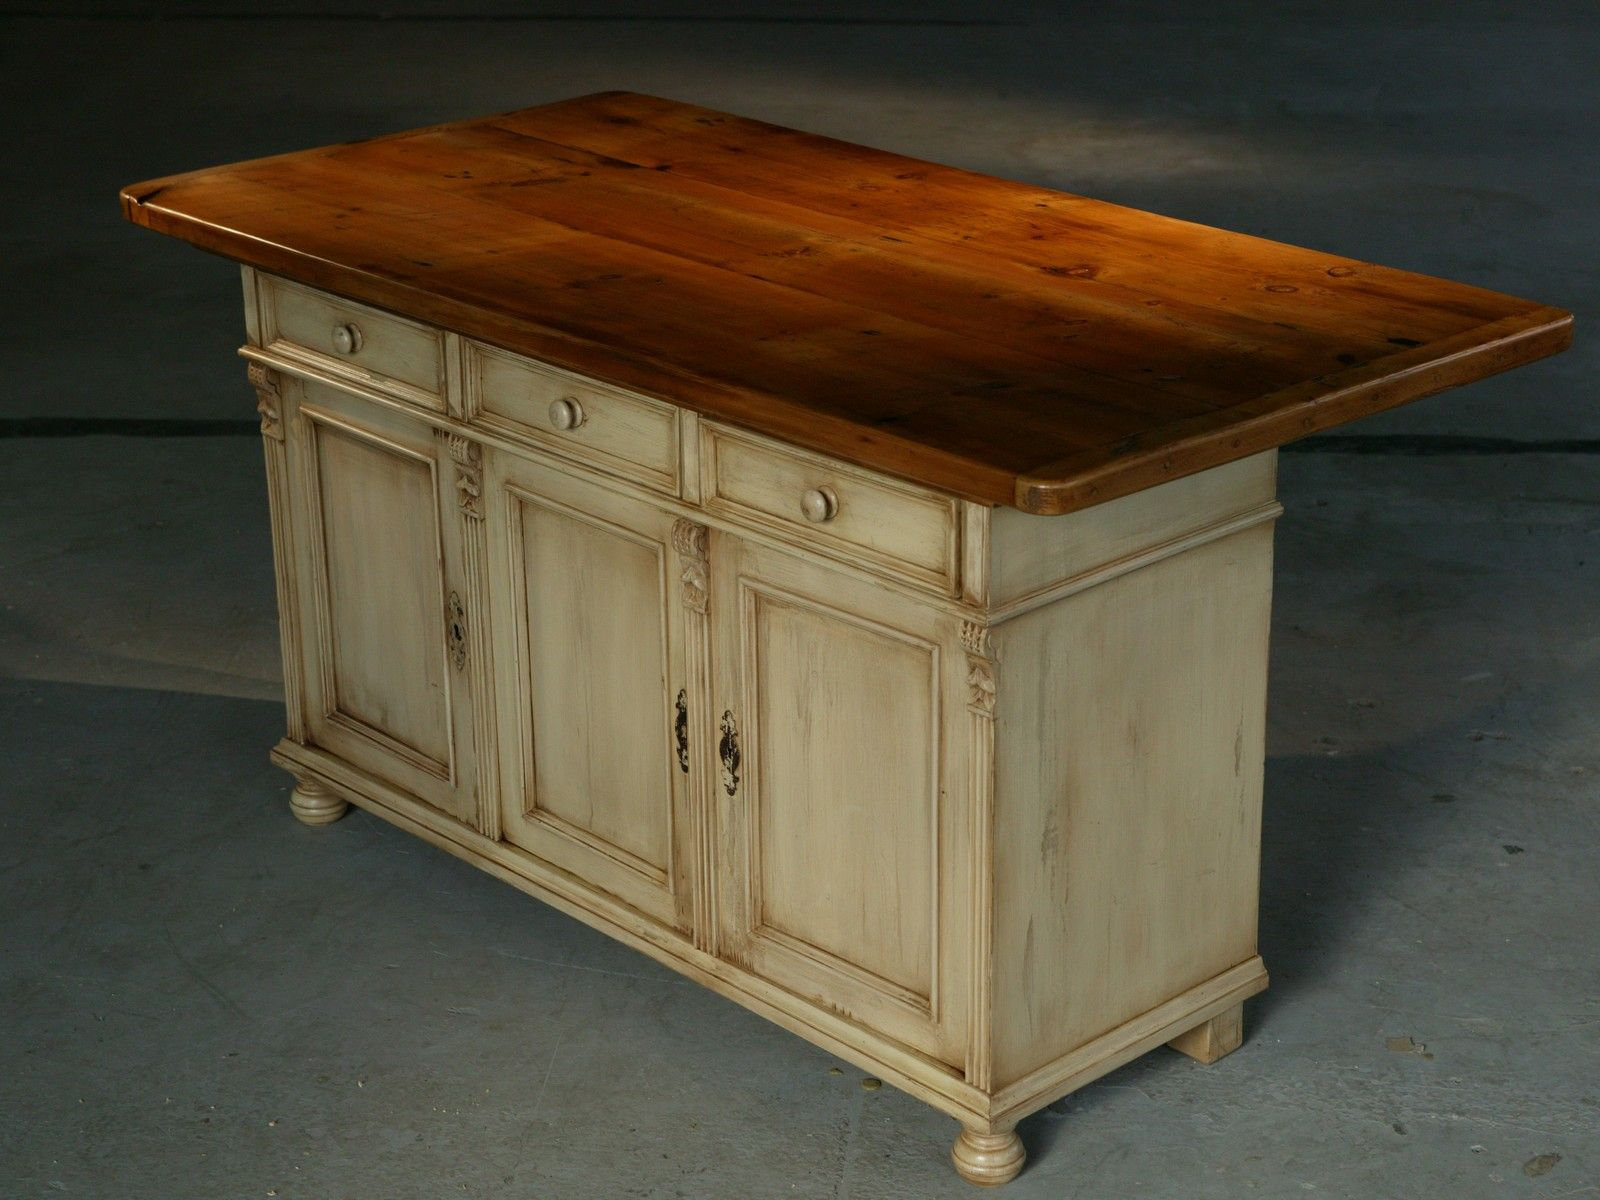 Kitchen Island Furniture European Sideboard Base in Snow White